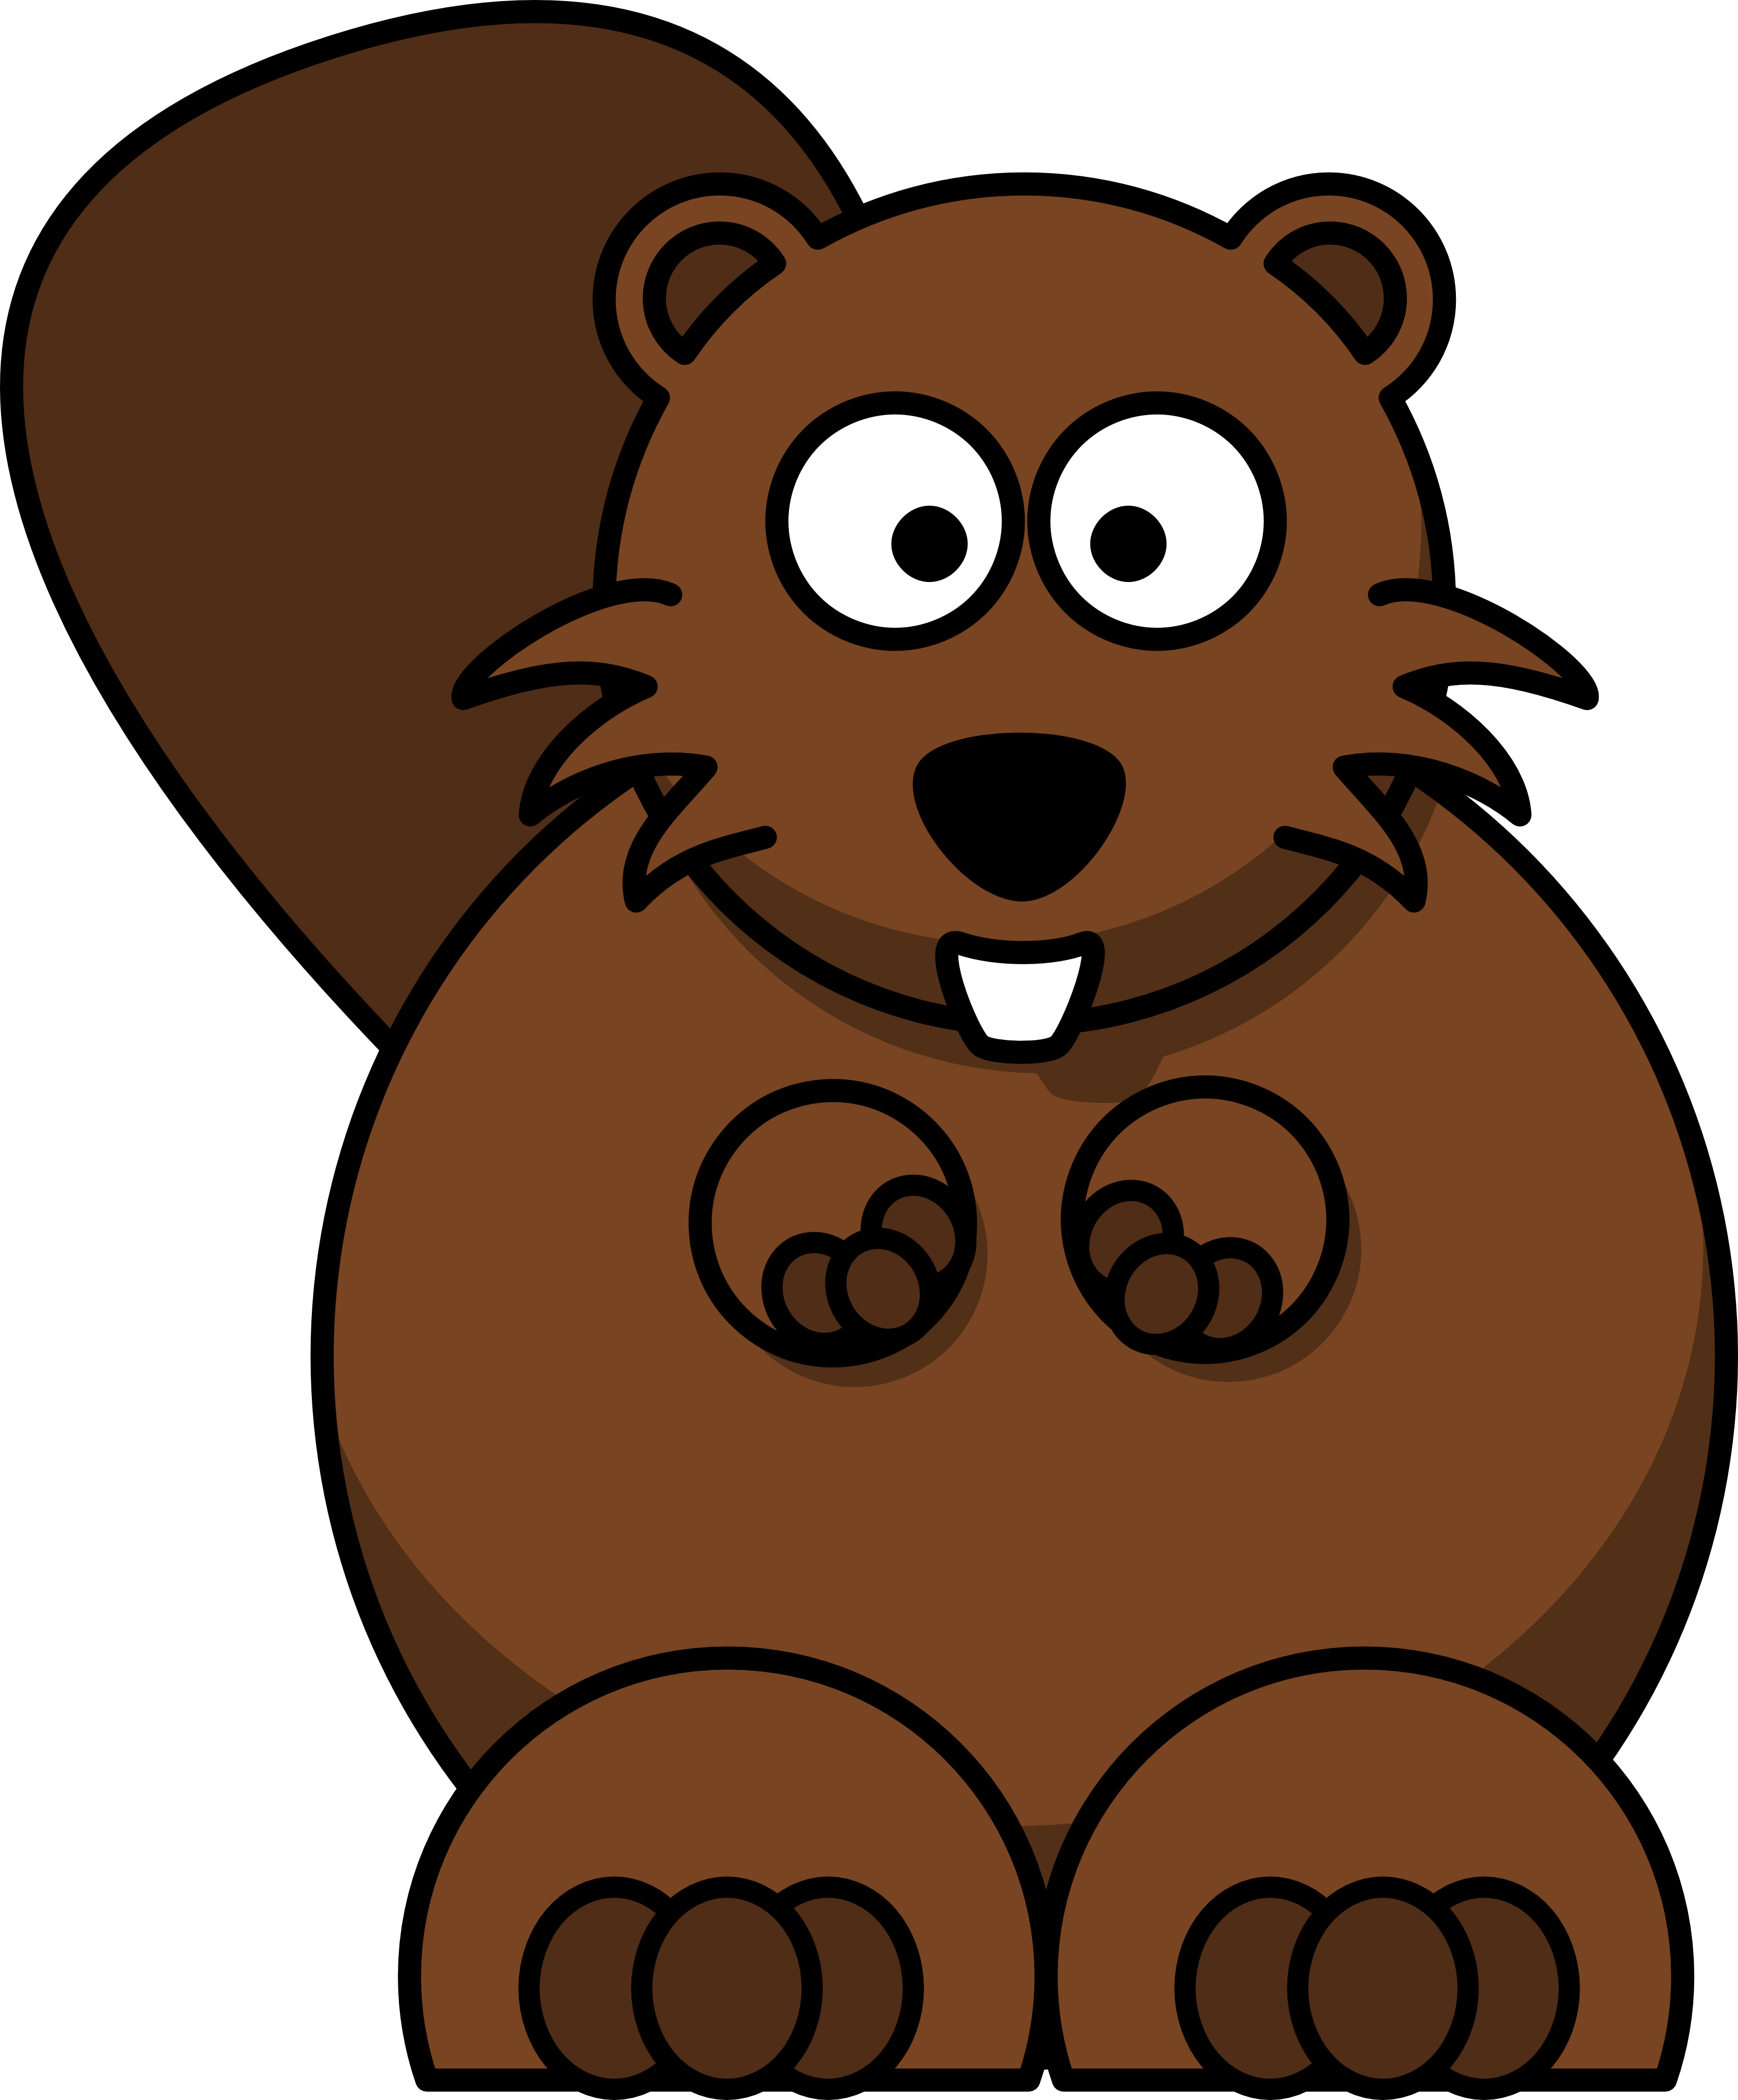 Free hunting cartoon cliparts. Beaver clipart beaver family image black and white download